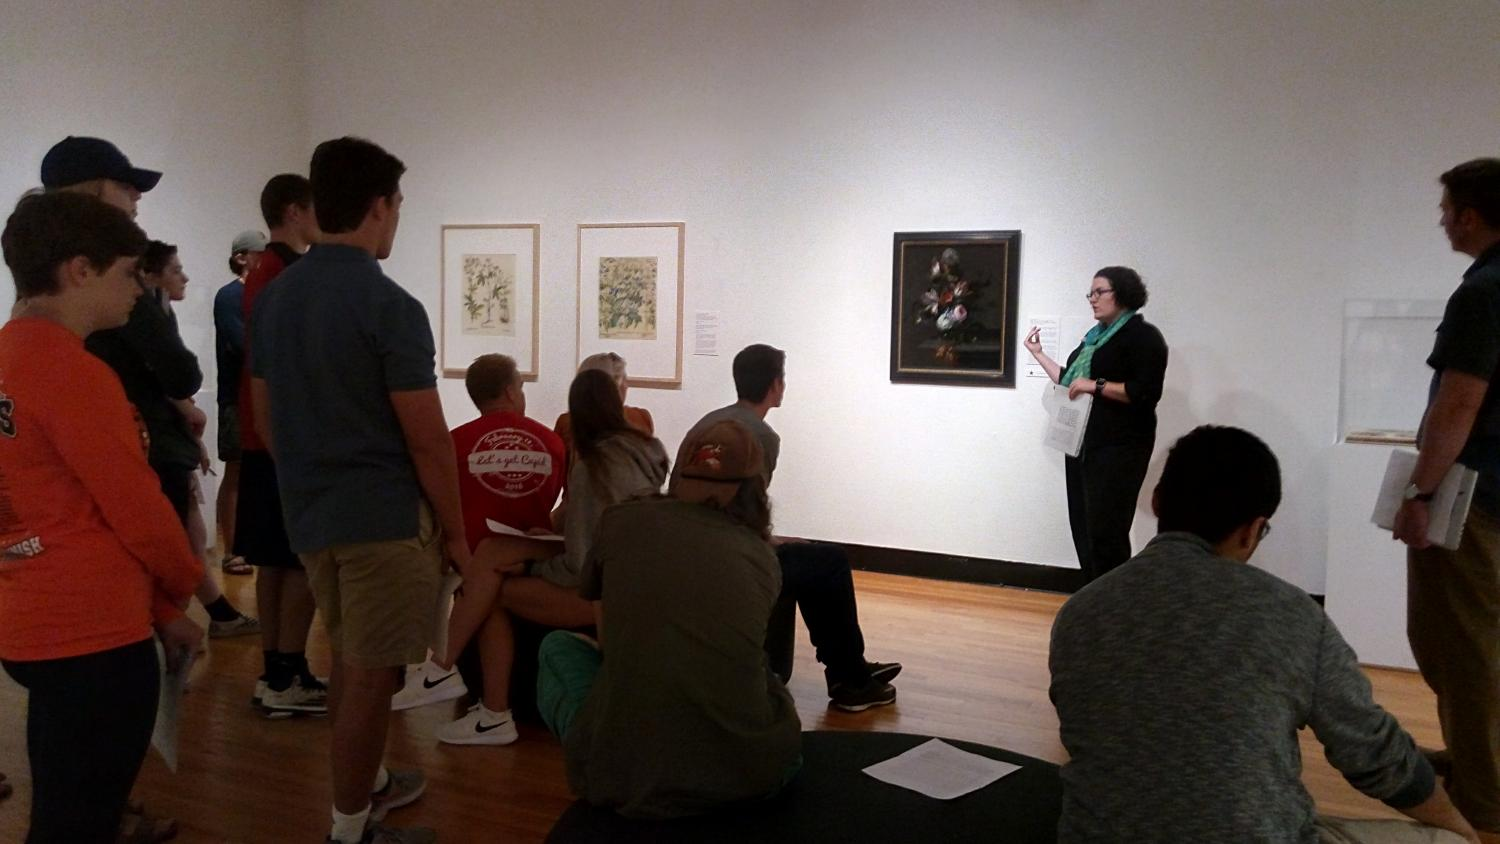 Maureen Warren, curator of European and American Art, talks with students about works on view in Coveting Nature